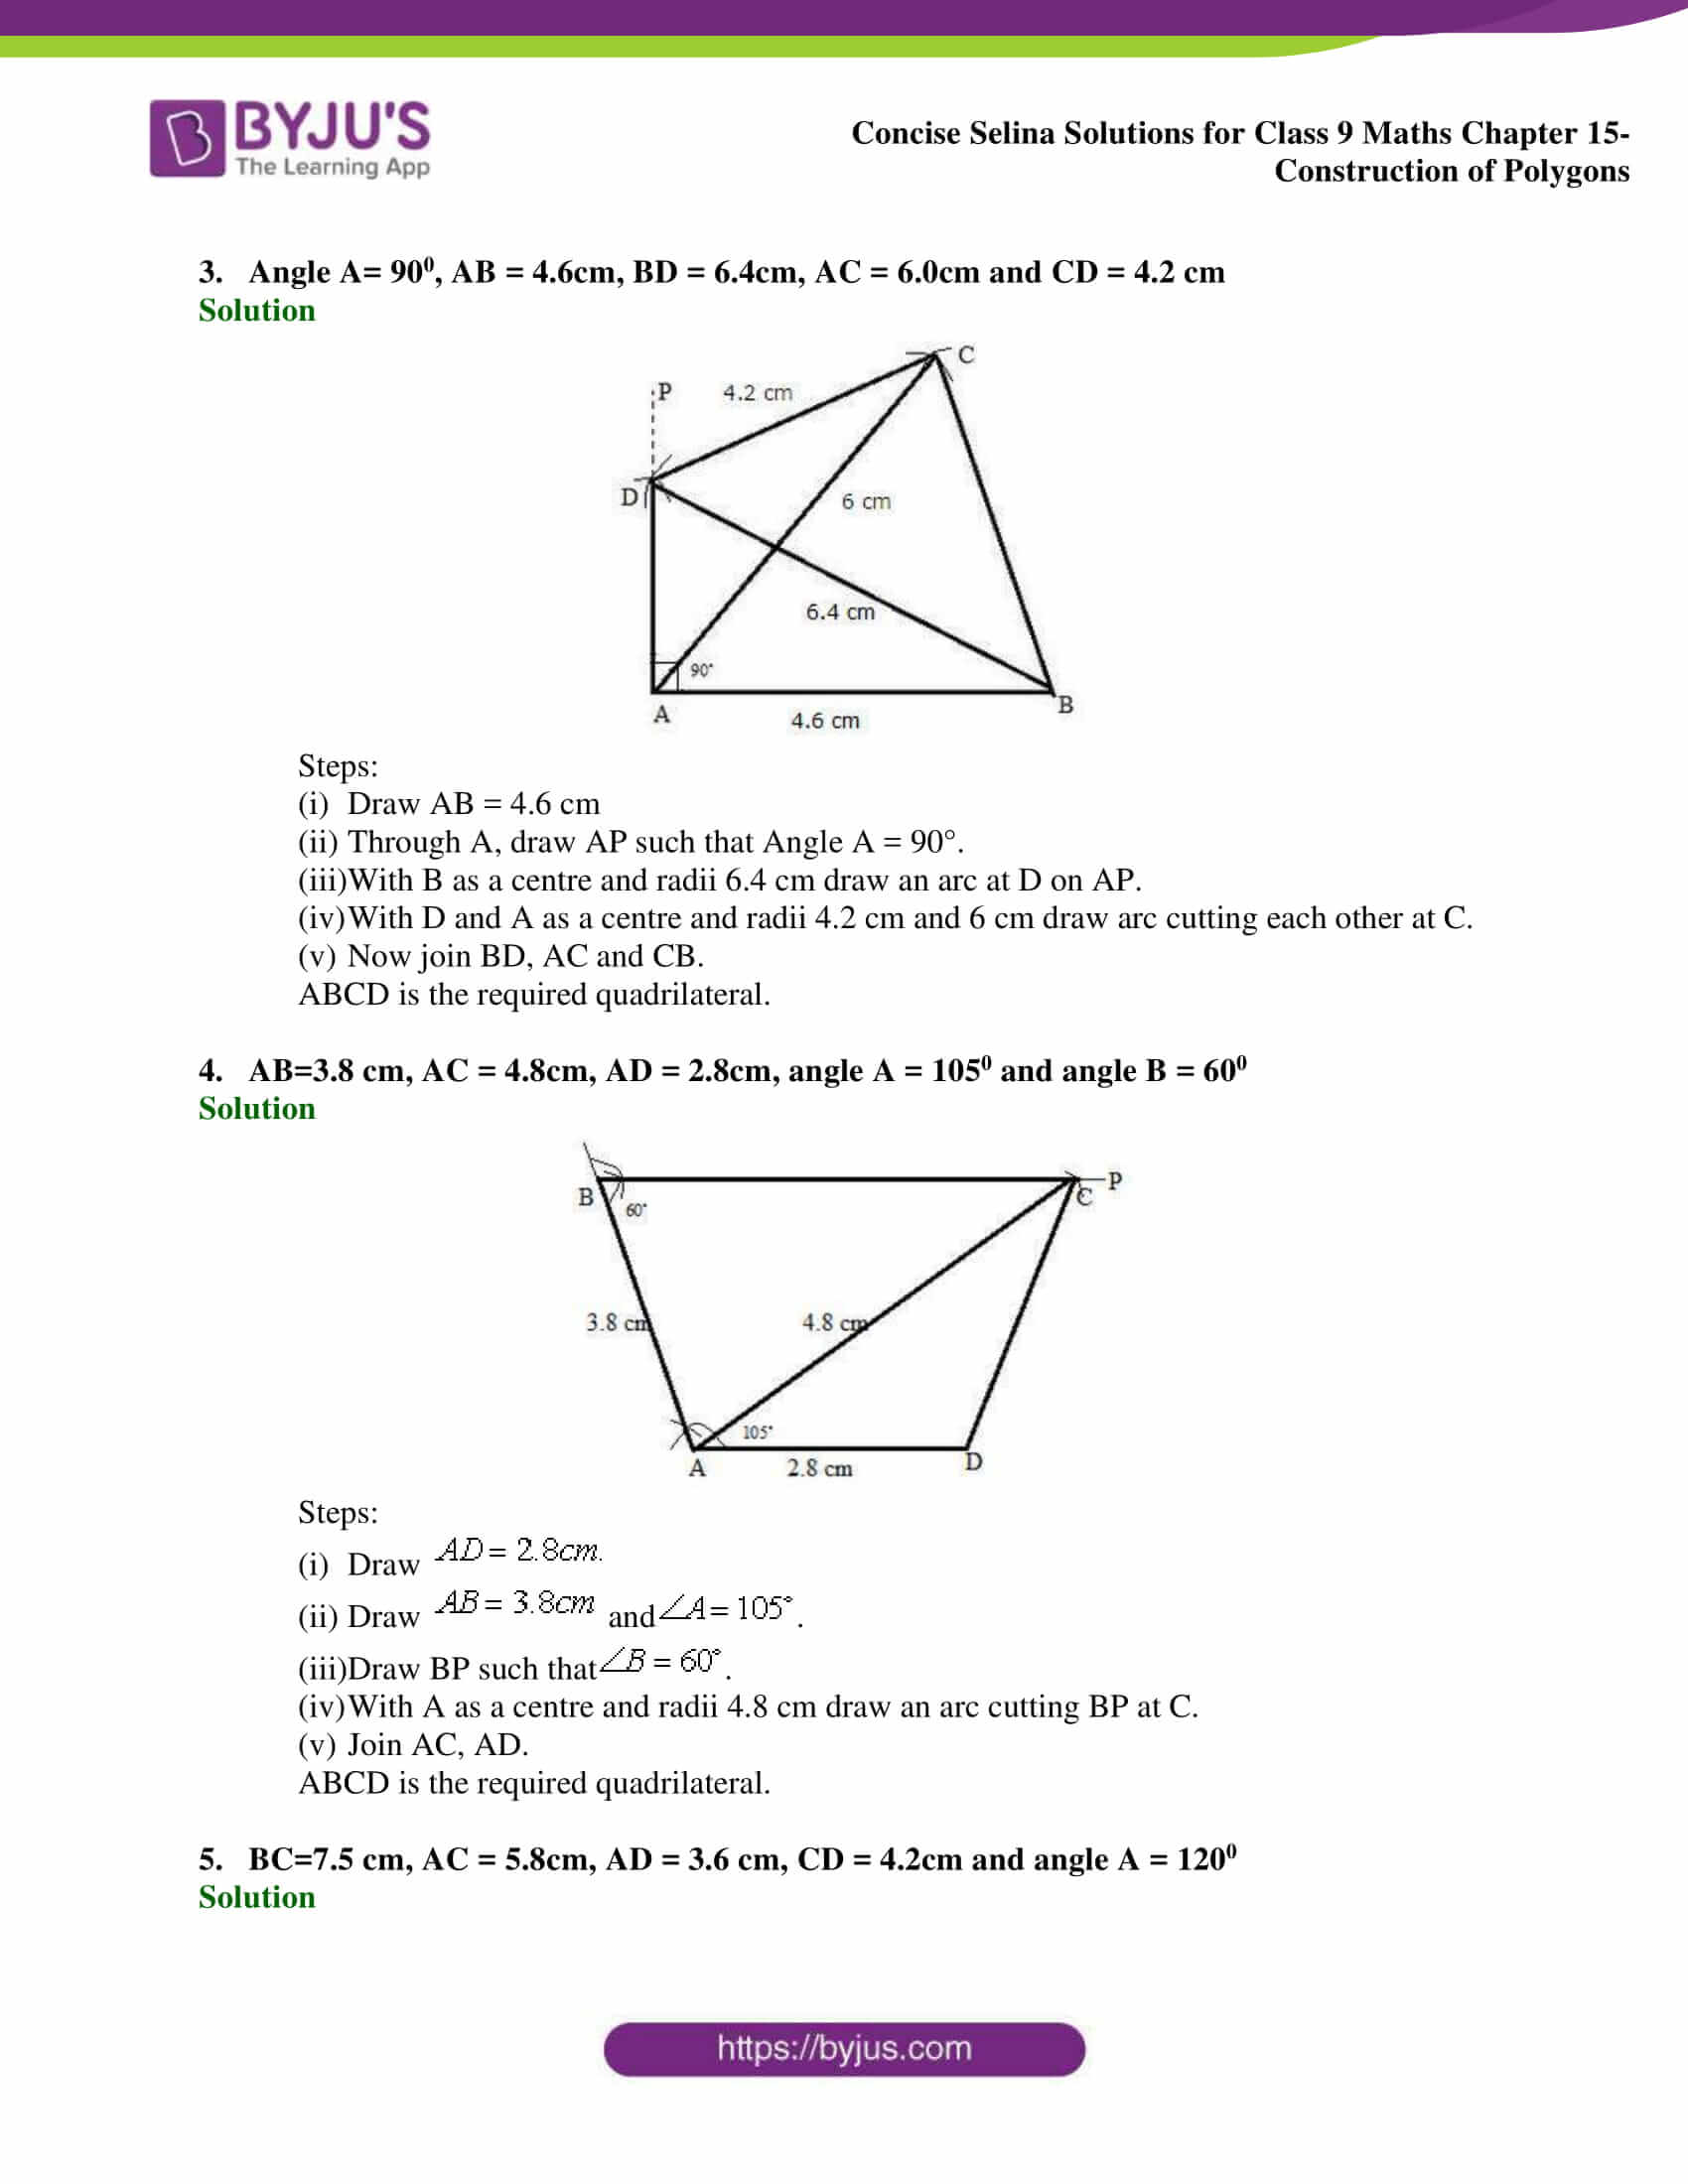 selina Solutions for Class 9 Maths Chapter 15 part 02